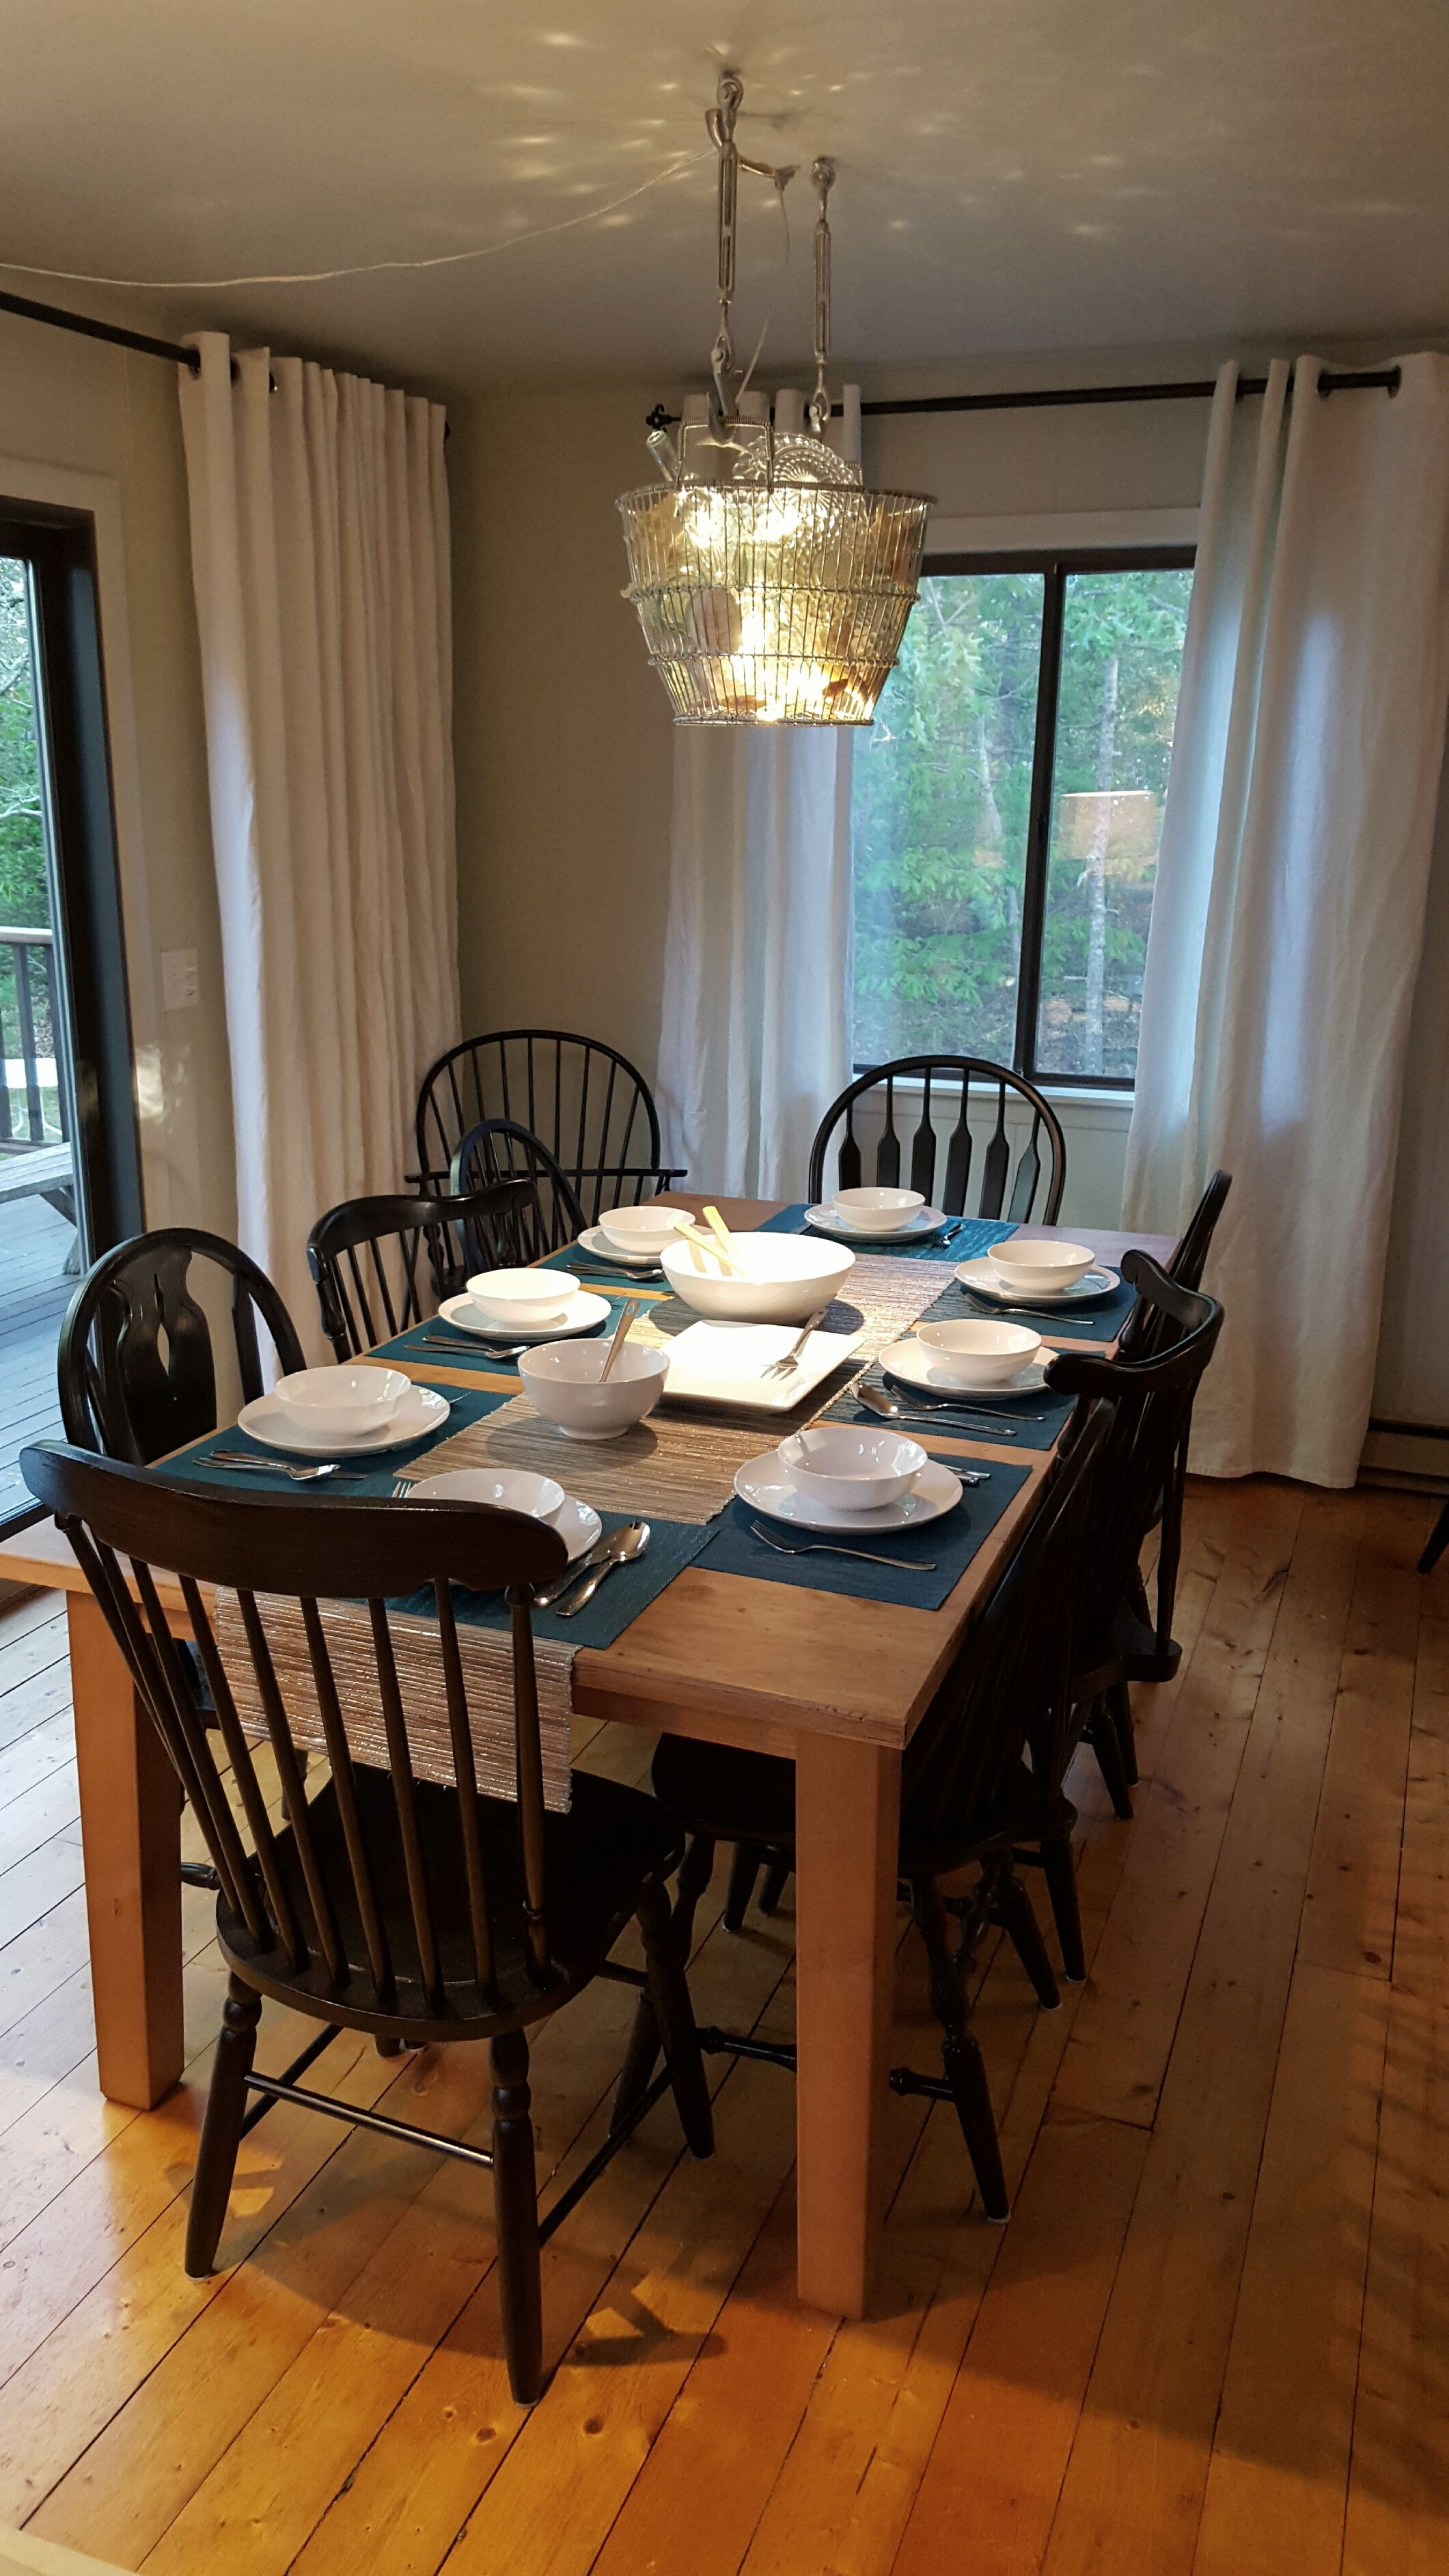 Mismatched Dining Chairs a collection of mismatched spindle back dining chairs is unified